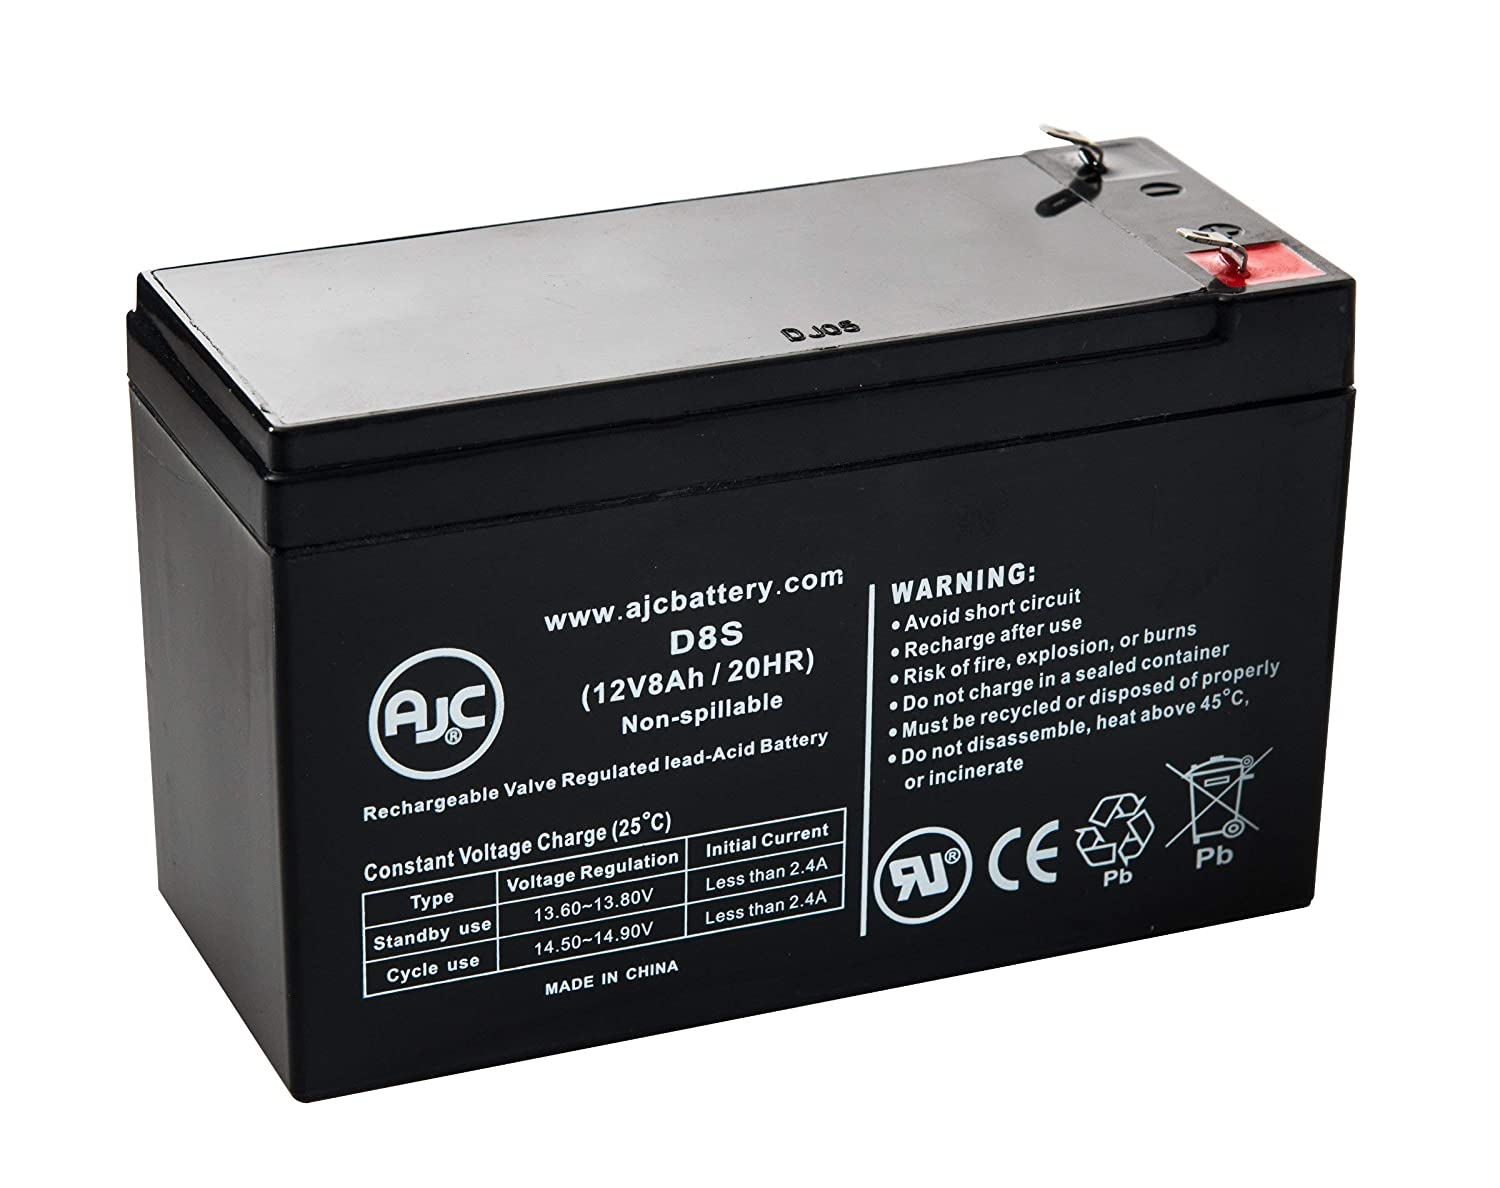 Razor E300 E 300 13113640 12V 8Ah Scooter Battery - This is an AJC Brand Replacement AJC Battery